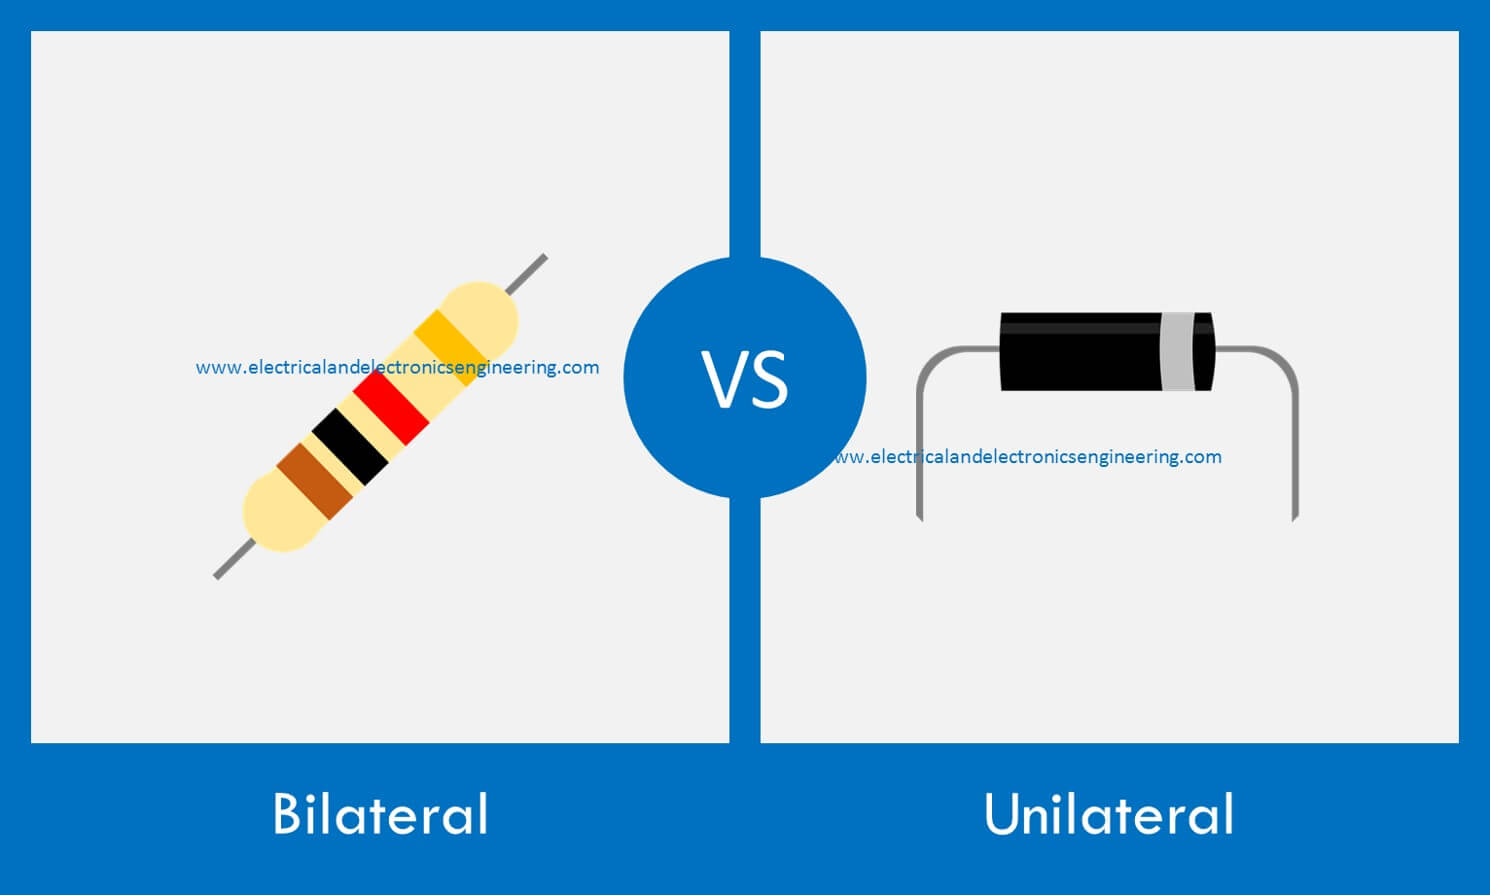 Difference between Unilateral and Bilateral Components - Electrical and Electronics Engineering